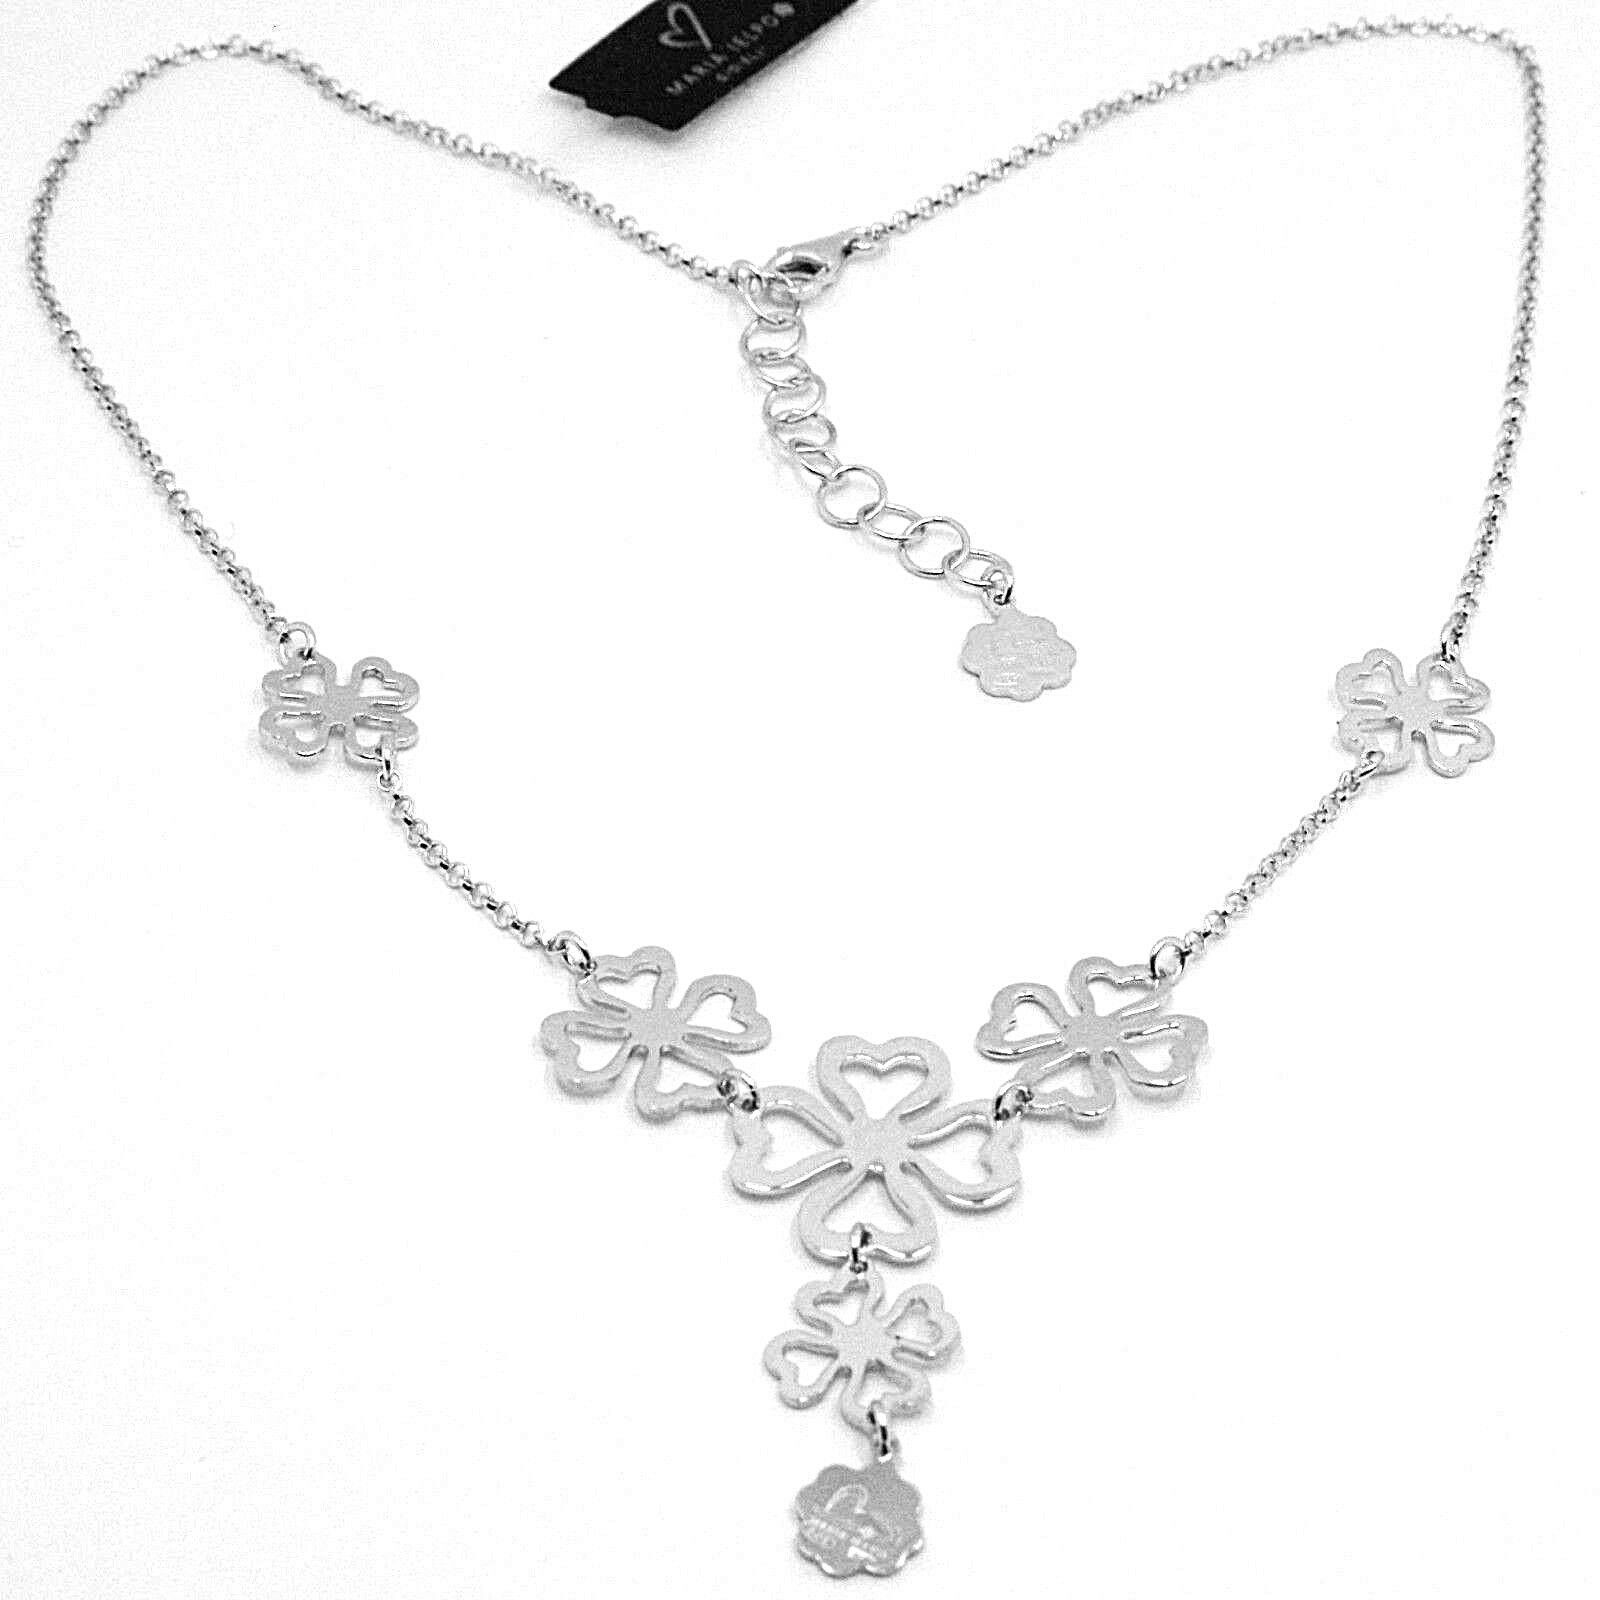 SILVER 925 NECKLACE,FOUR-LEAF CLOVER GOOD LUCK CHARM,BY MARY JANE IELPO,